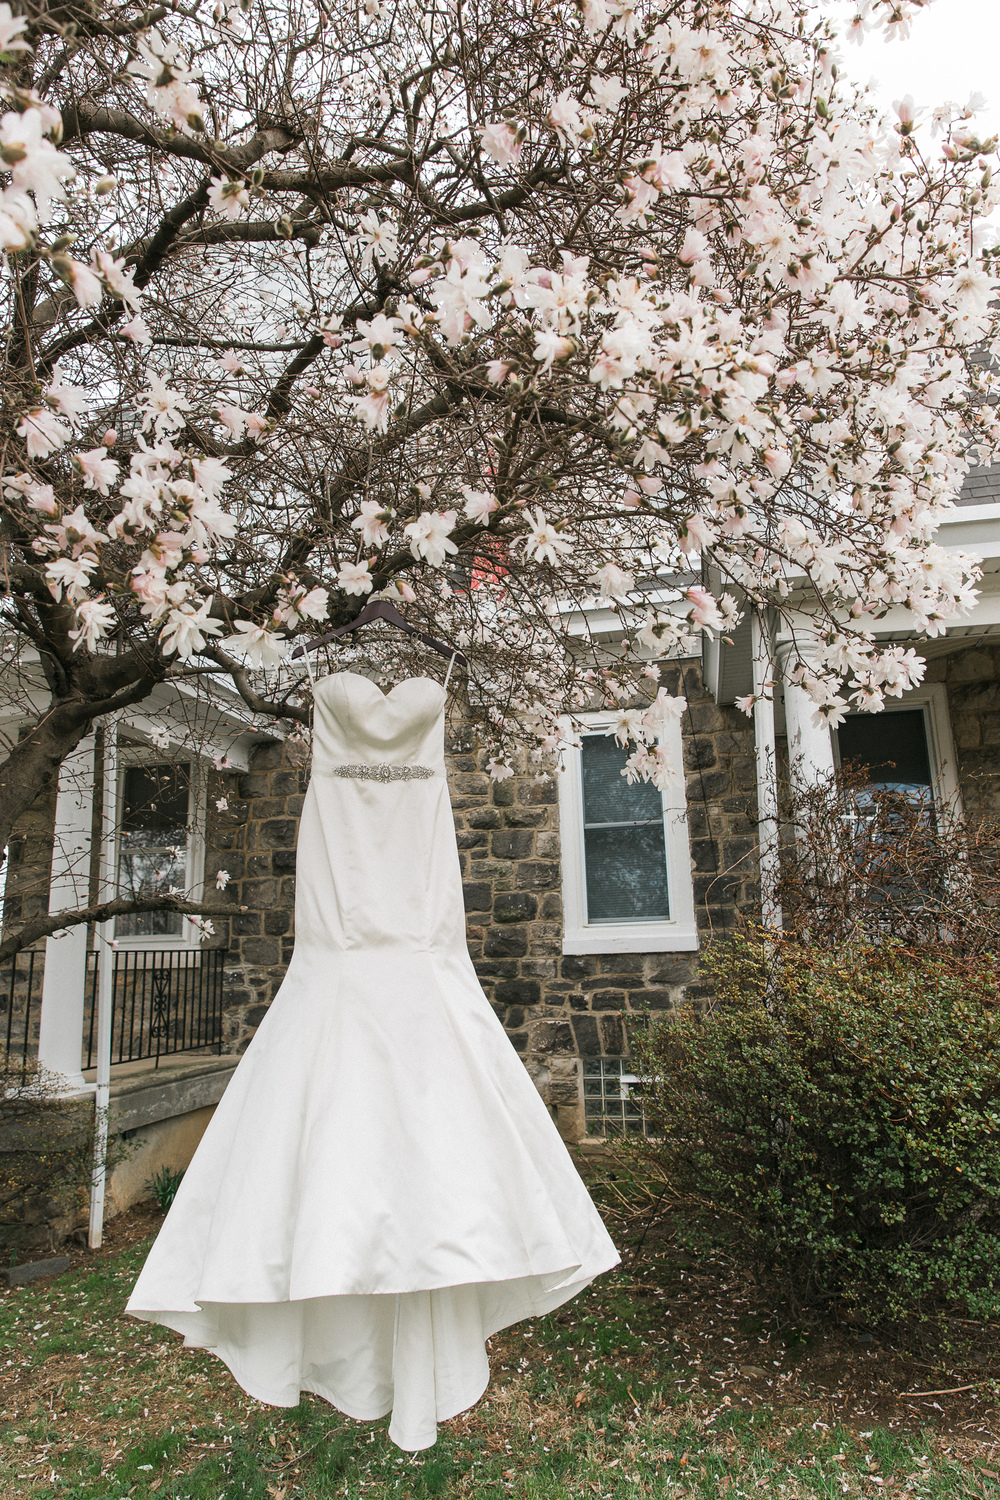 Flowering Tree with Wedding Dress